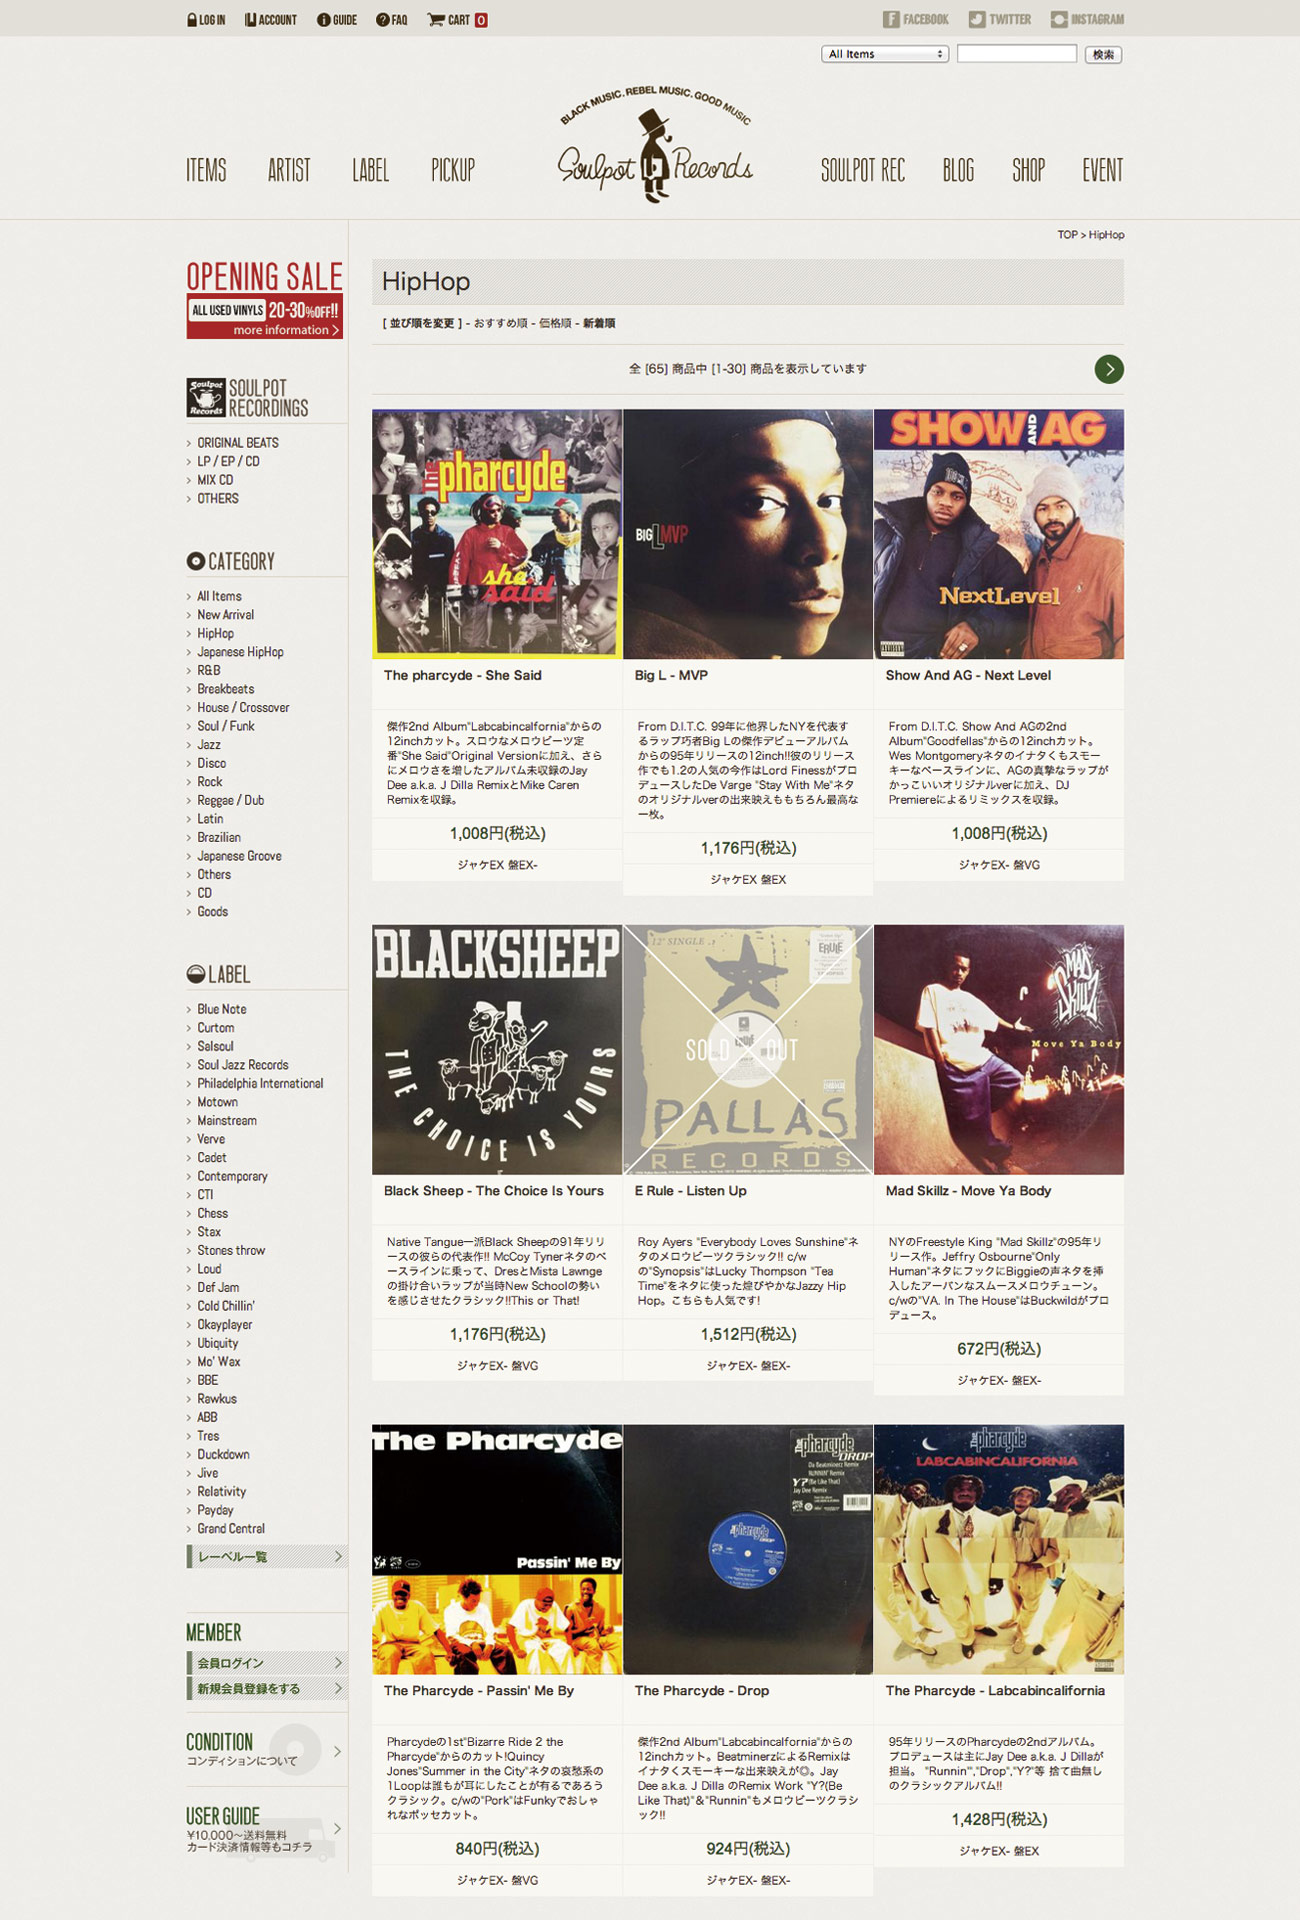 SOULPOT RECORDS website